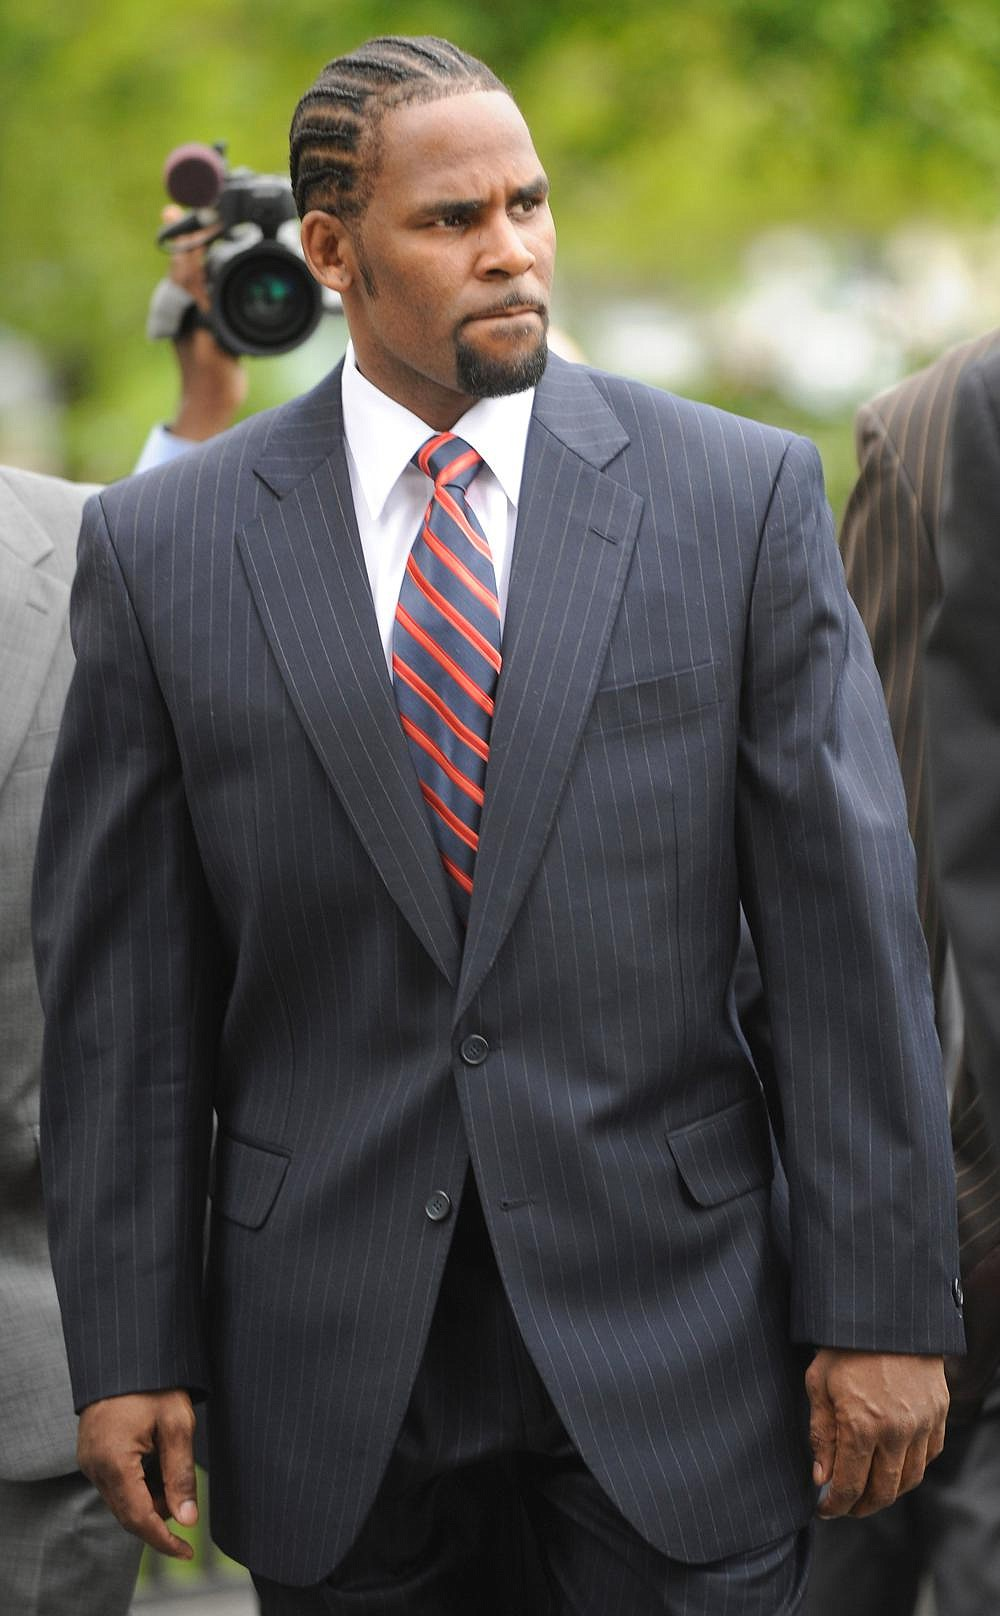 R&B musician R. Kelly is shown in this Tuesday, May 20, 2008 file photo.  (AP Photo/Paul Beaty)